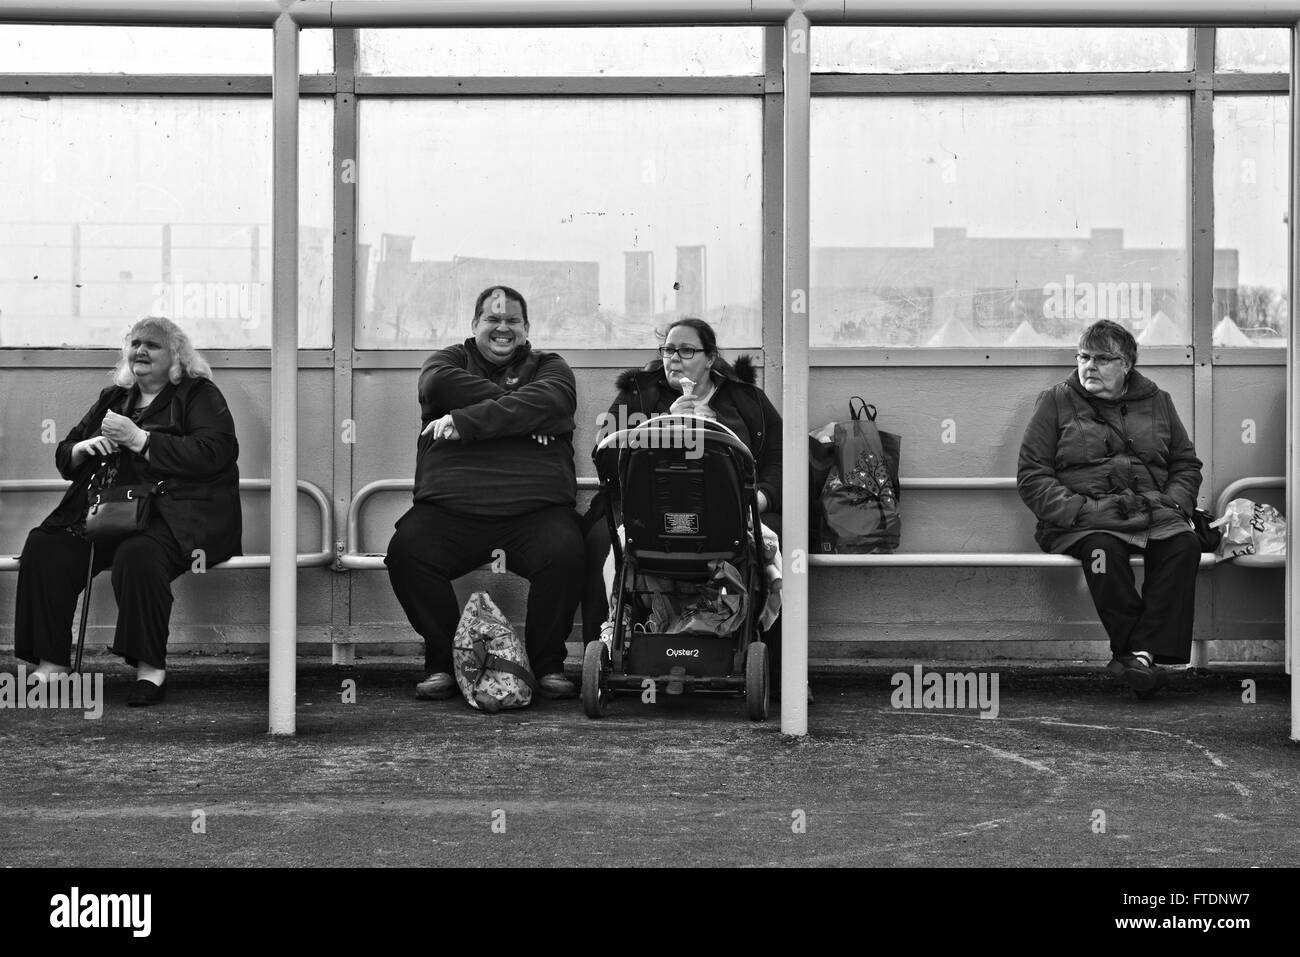 A candid image of four overweight people sitting in a beach shelter at Skegness, Lincolnshire, UK - Stock Image